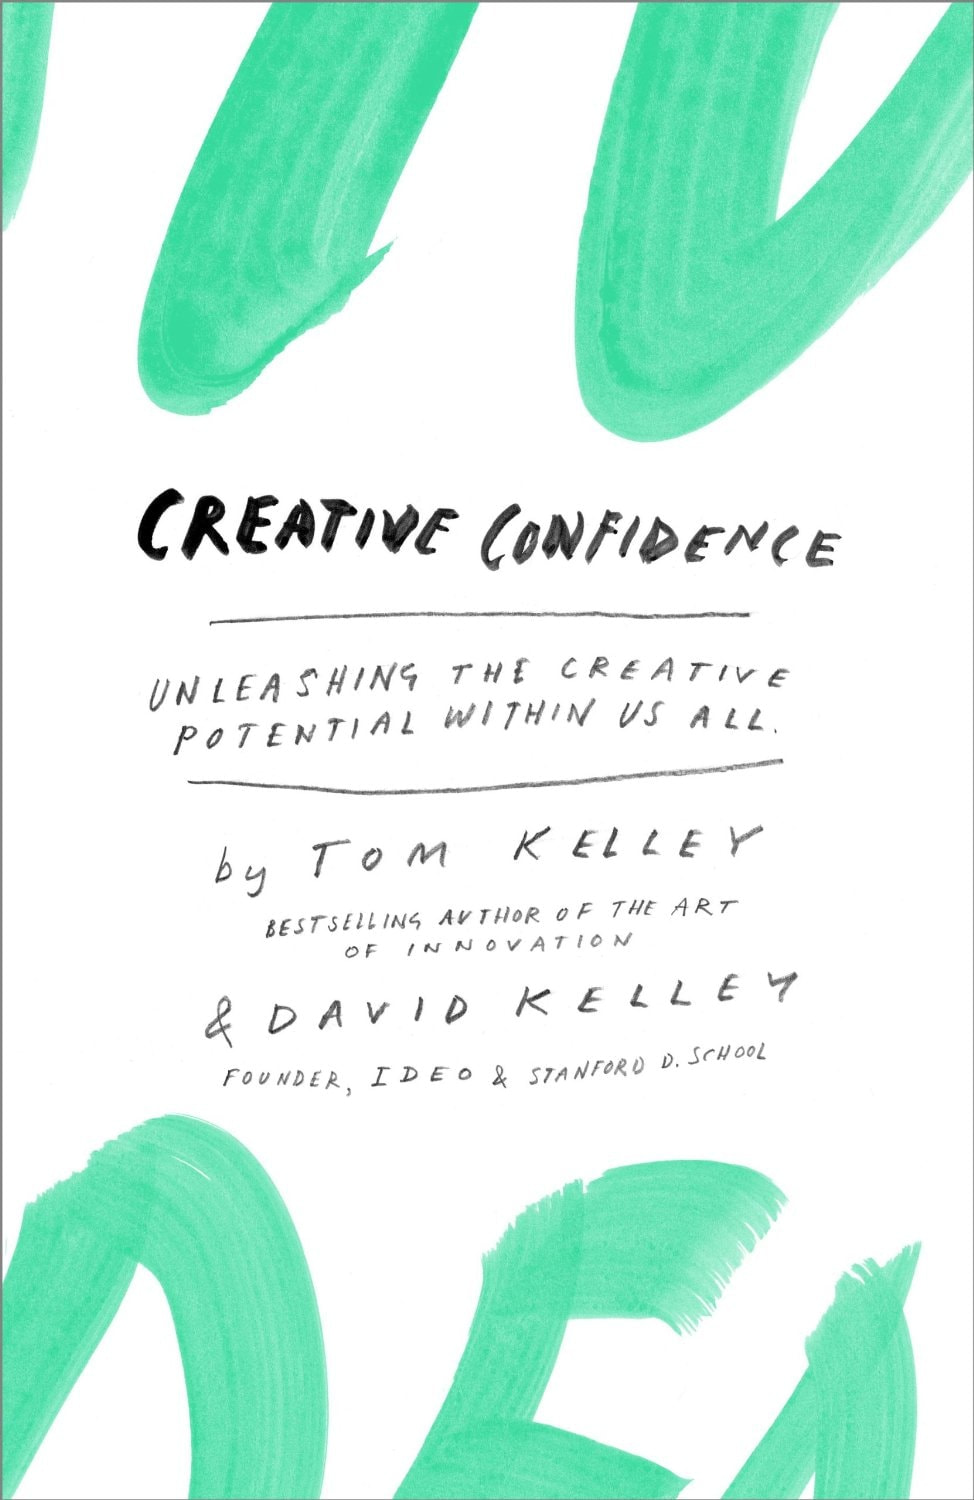 Creative Confidence: Unleashing the Creative Potential Within Us All – Tom Kelley